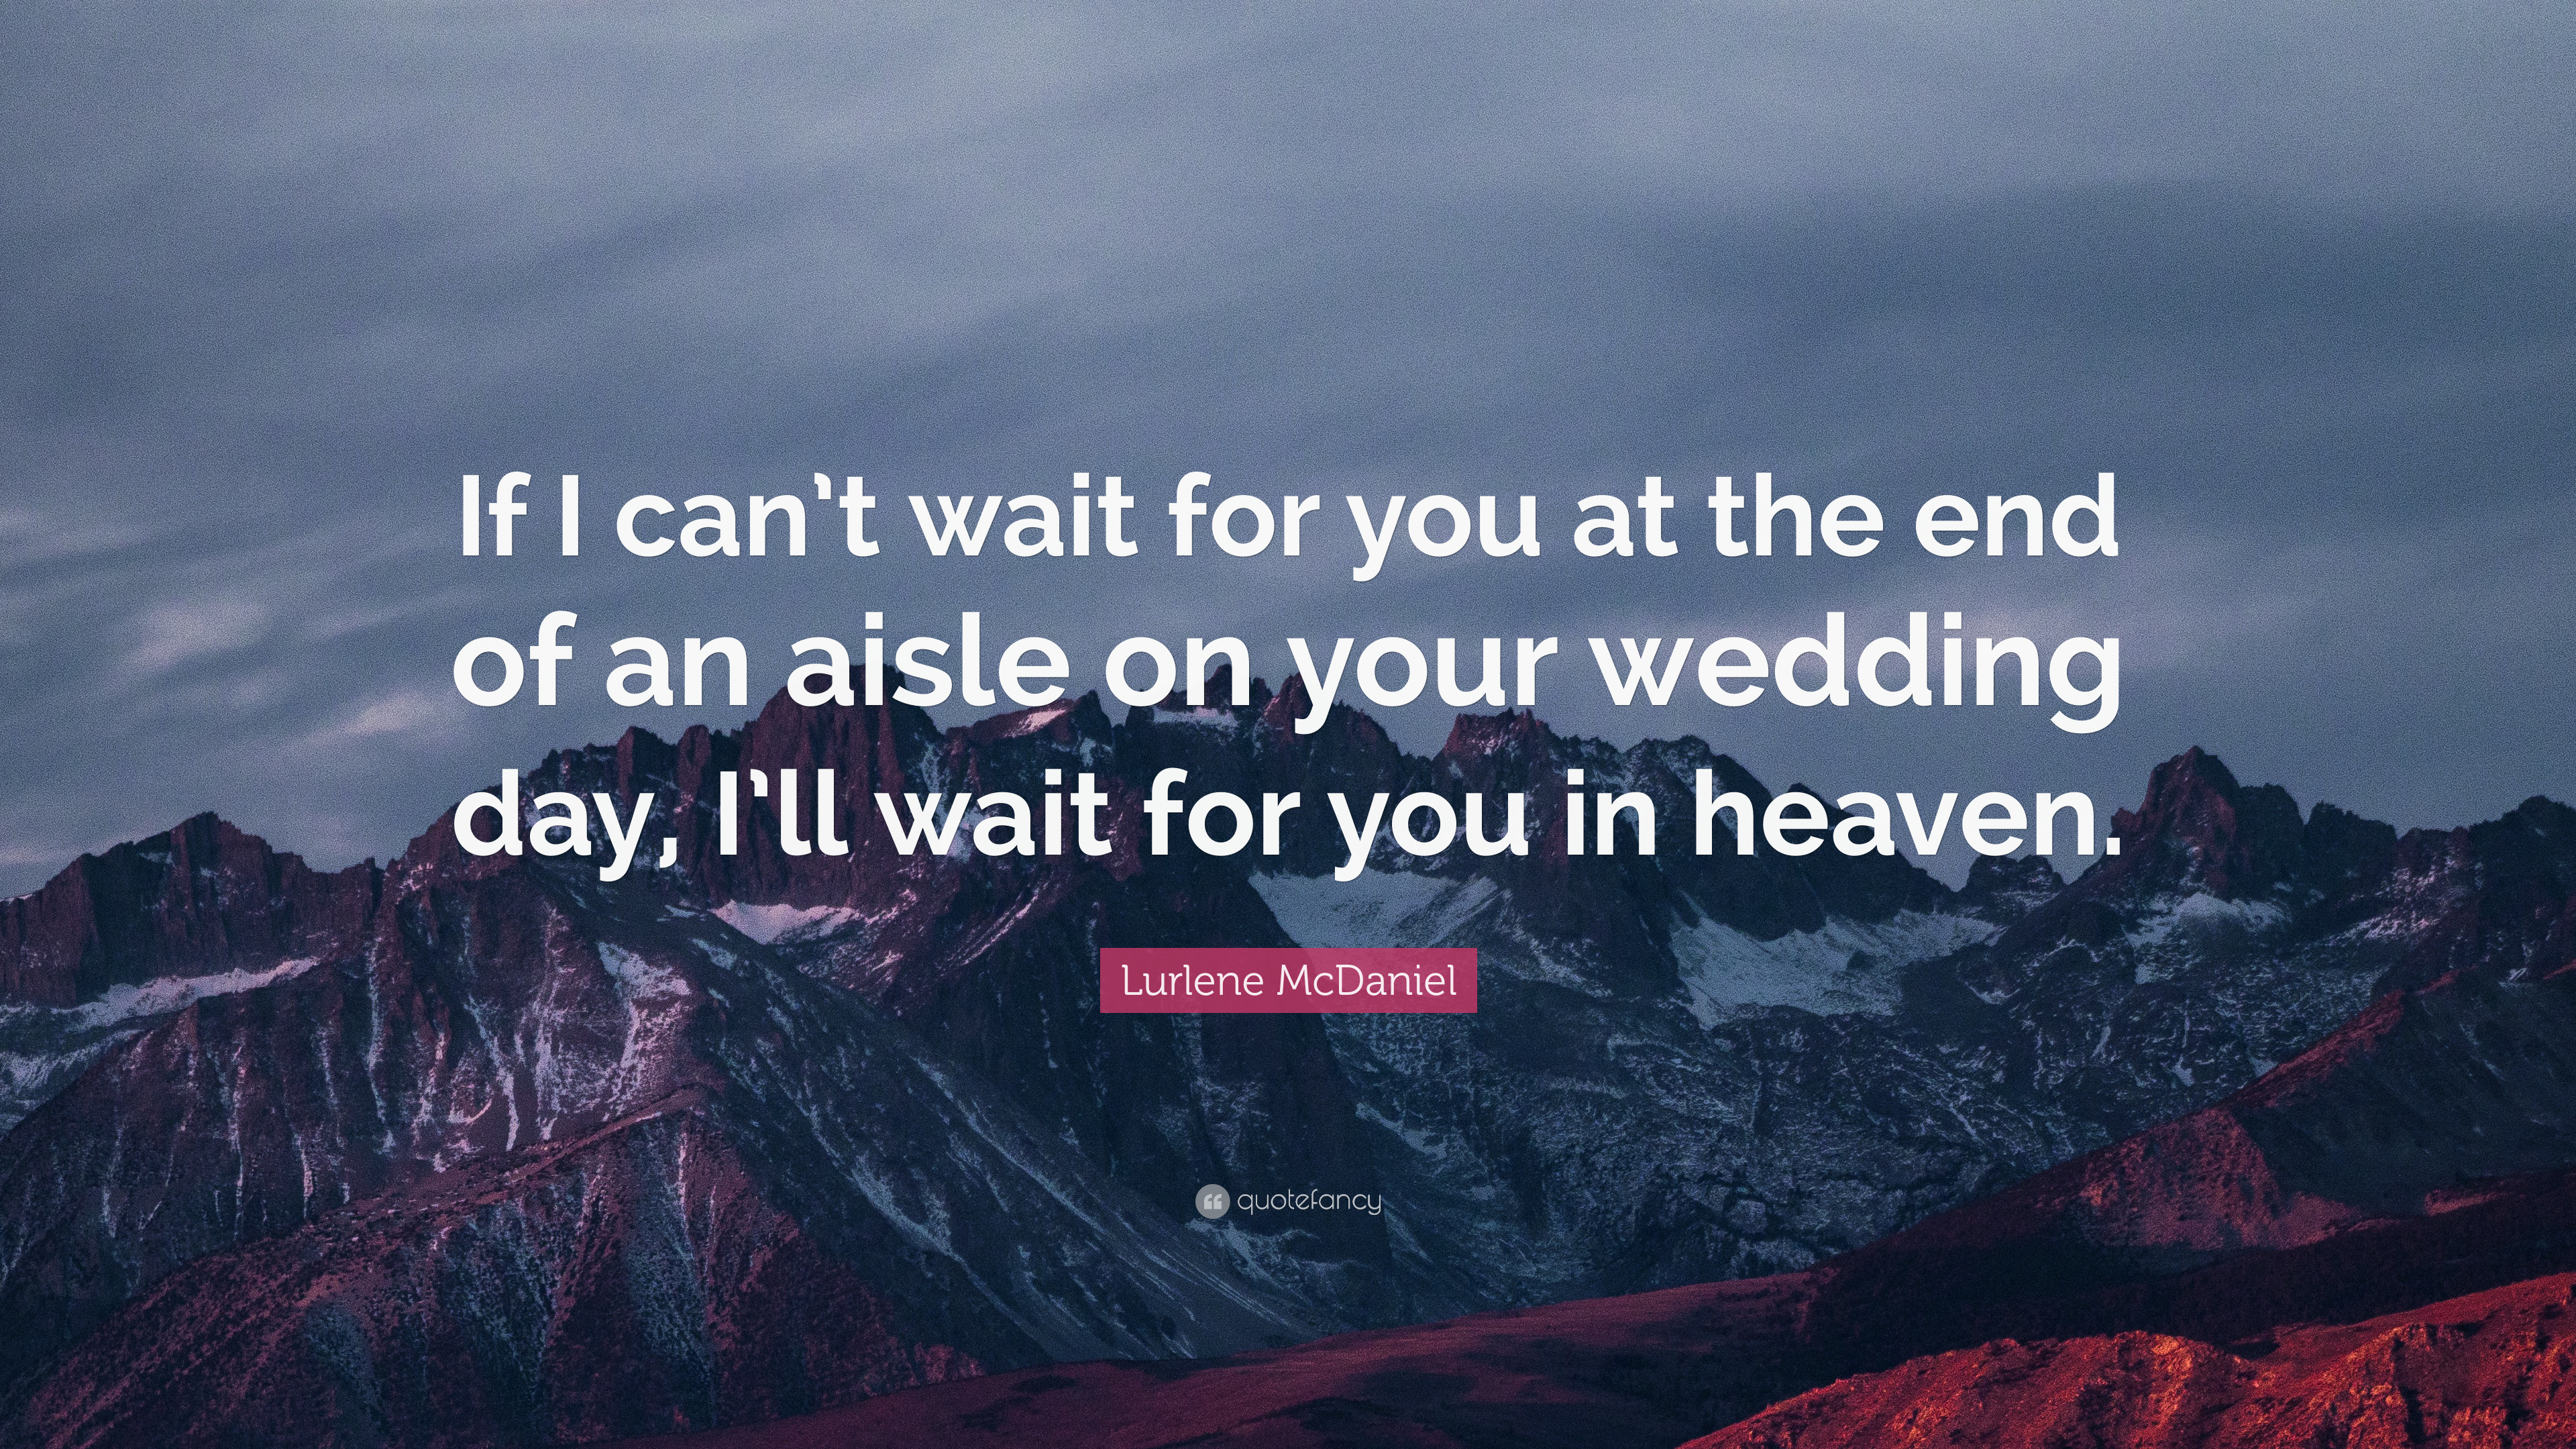 Lurlene Mcdaniel Quote If I Cant Wait For You At The End Of An